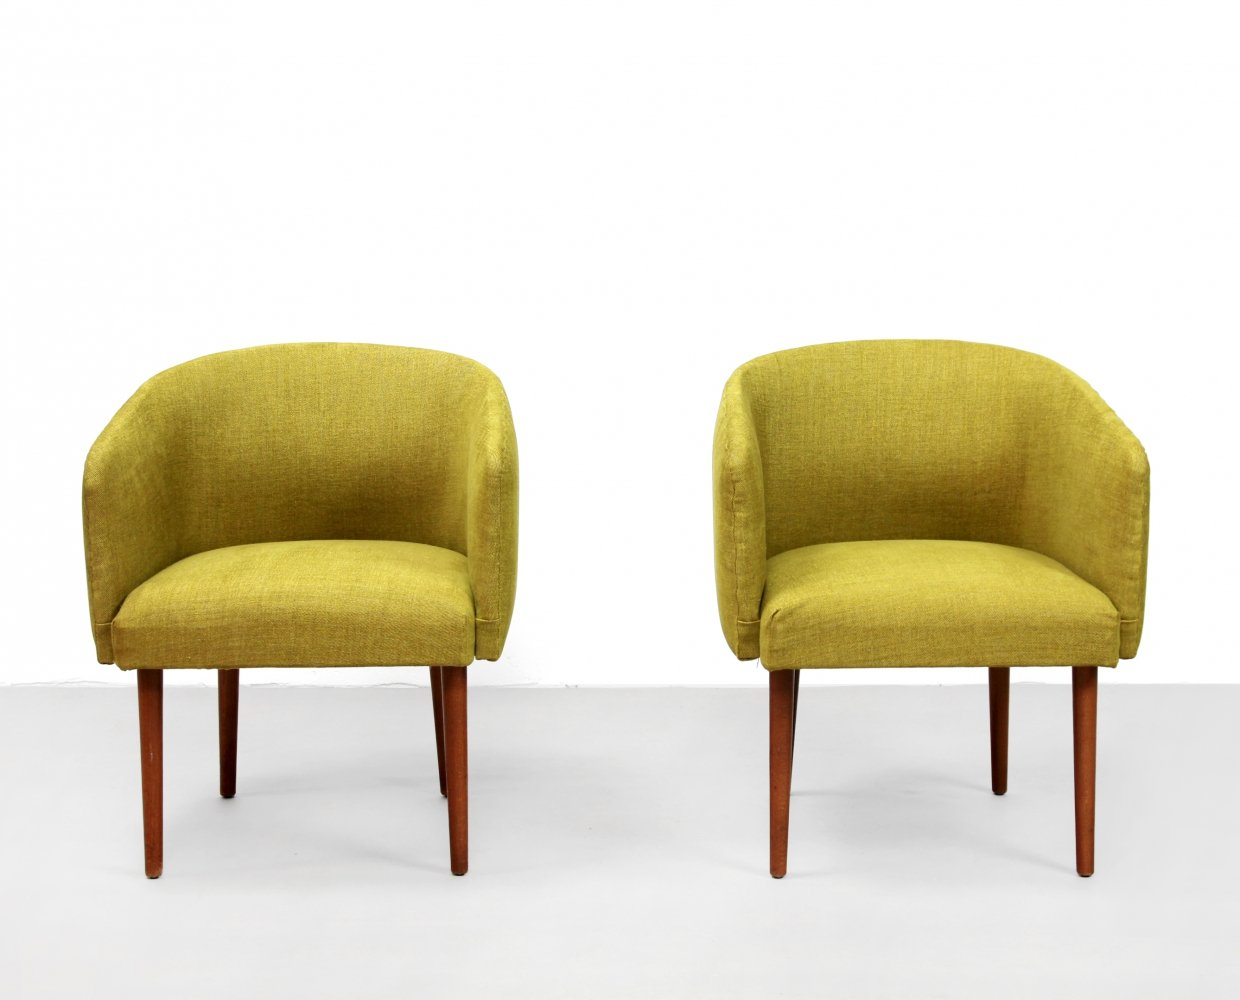 Set of two yellow mid century modern club chairs